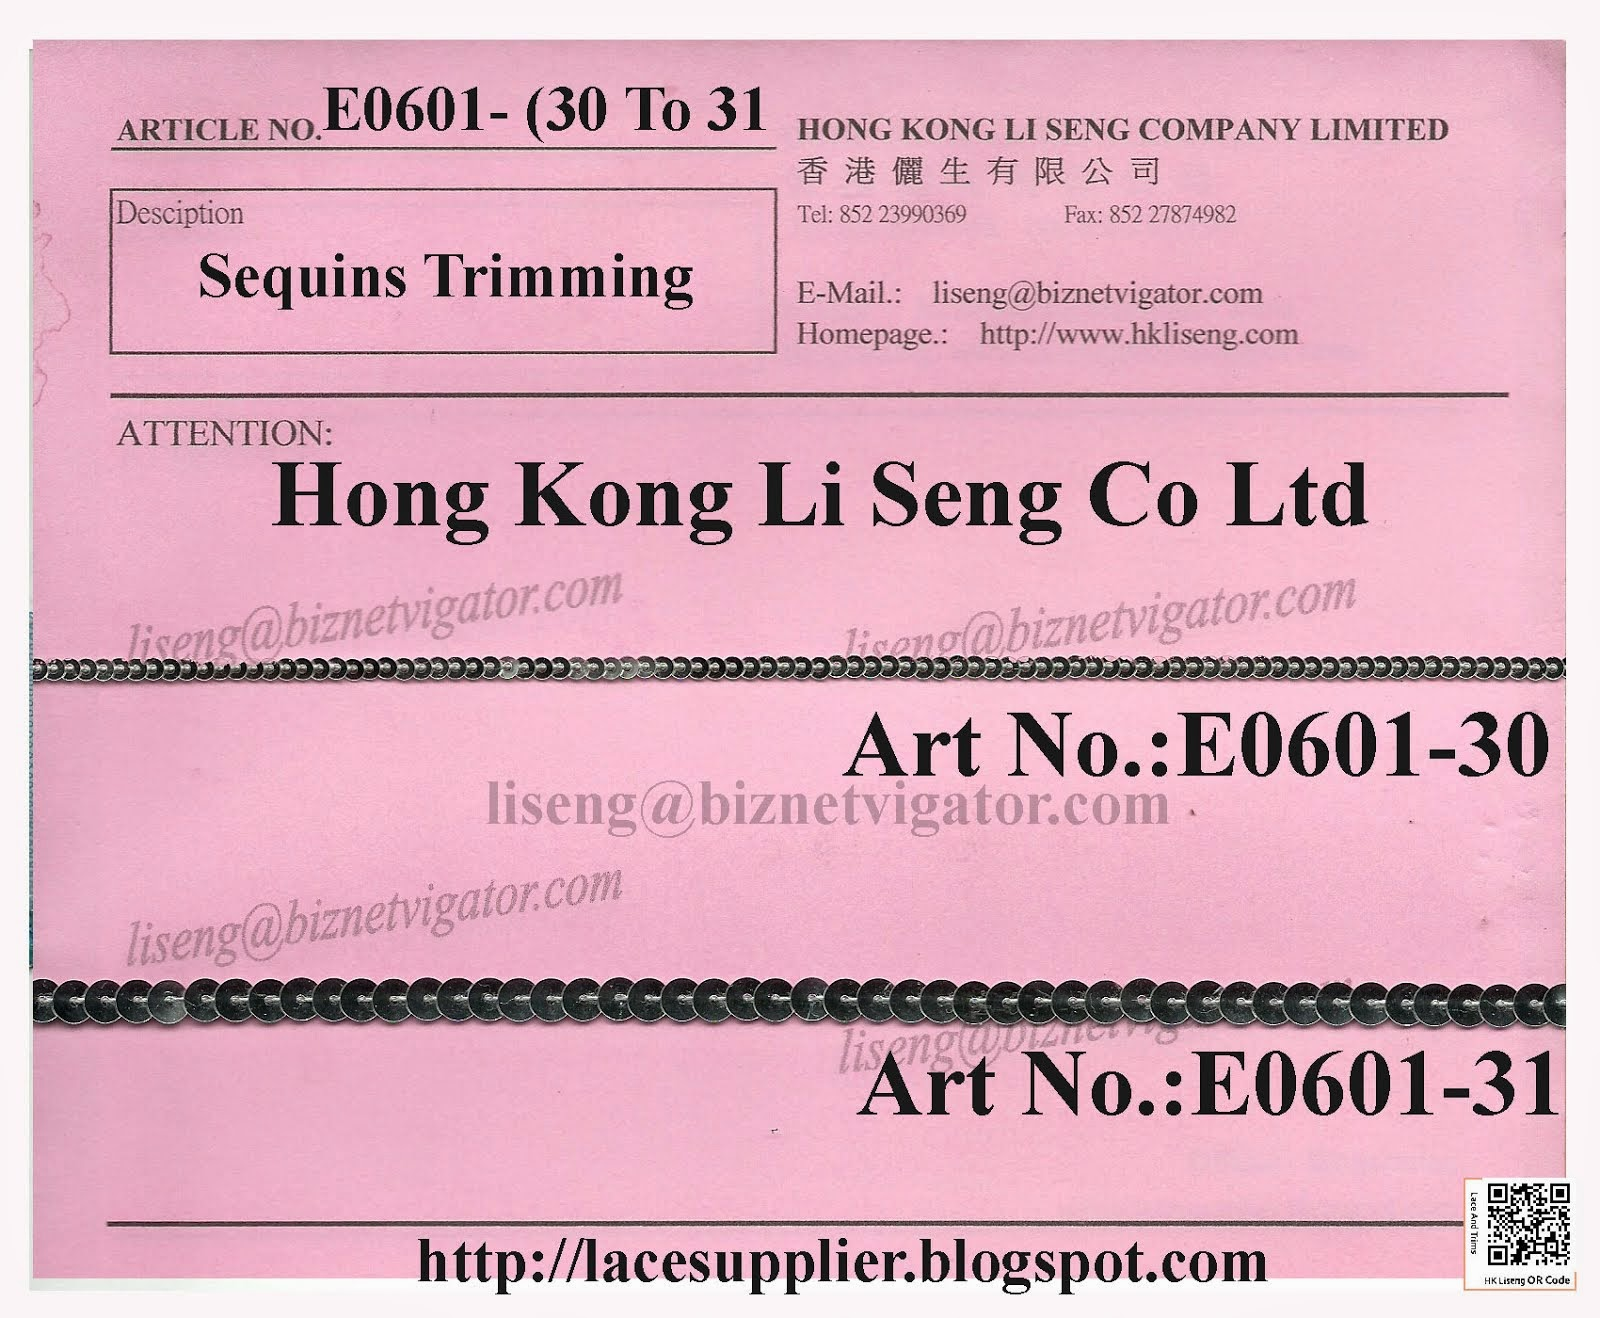 Sequins Trimming Manufacturer - Hong Kong Li Seng Co Ltd